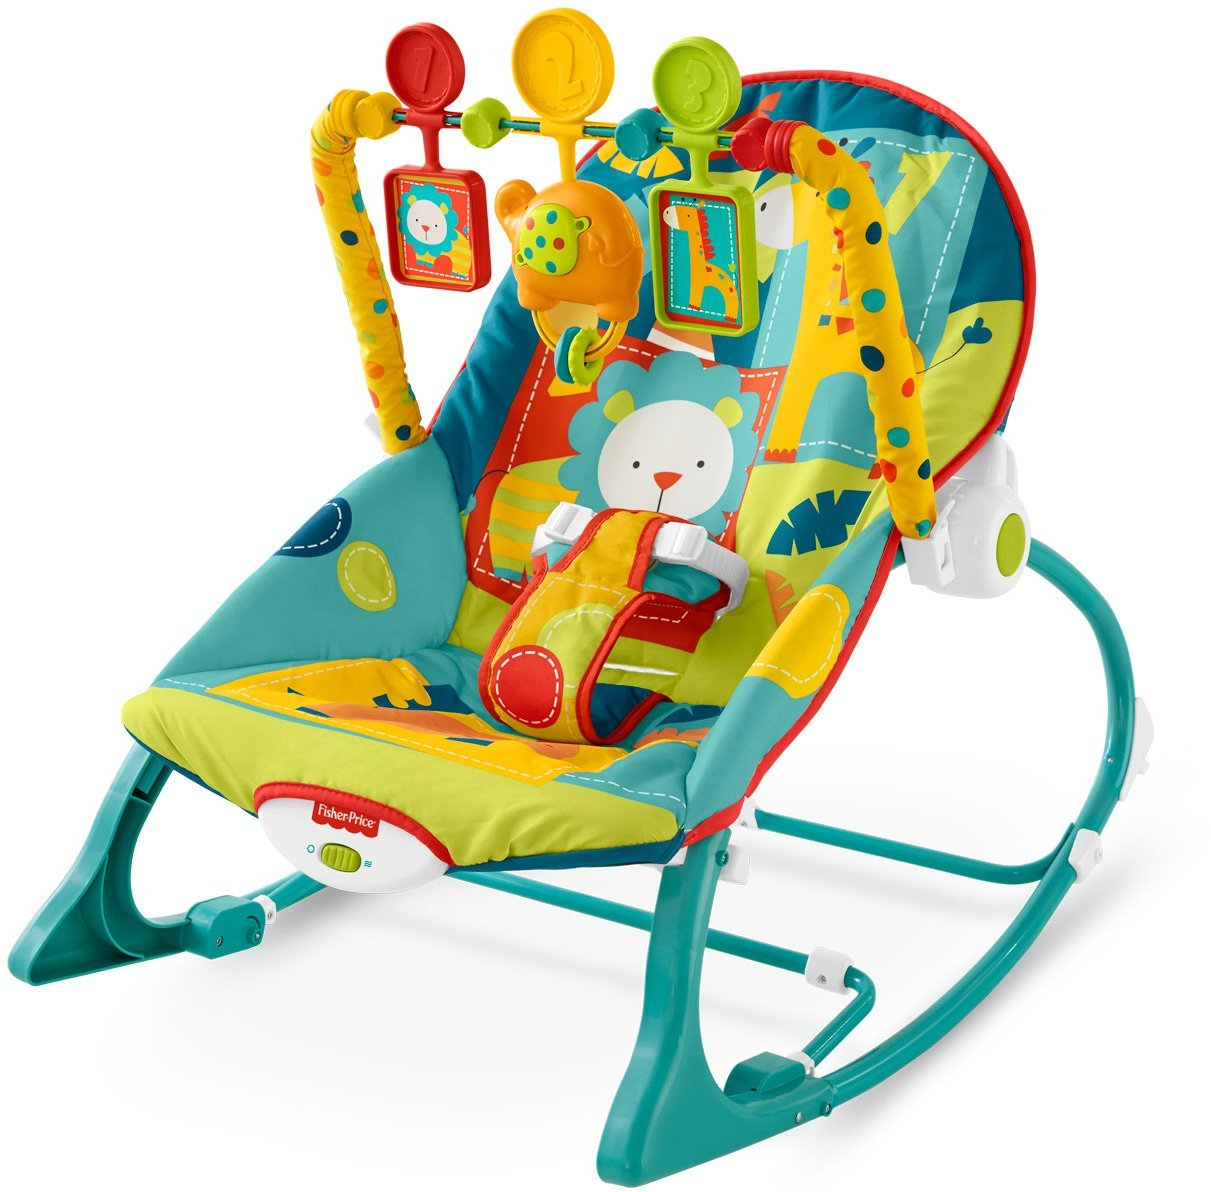 Fisher-Price-Infant-To-Toddler-Rocker The 10 Best Baby Rocking Chairs in India Reviews & Price List 2018